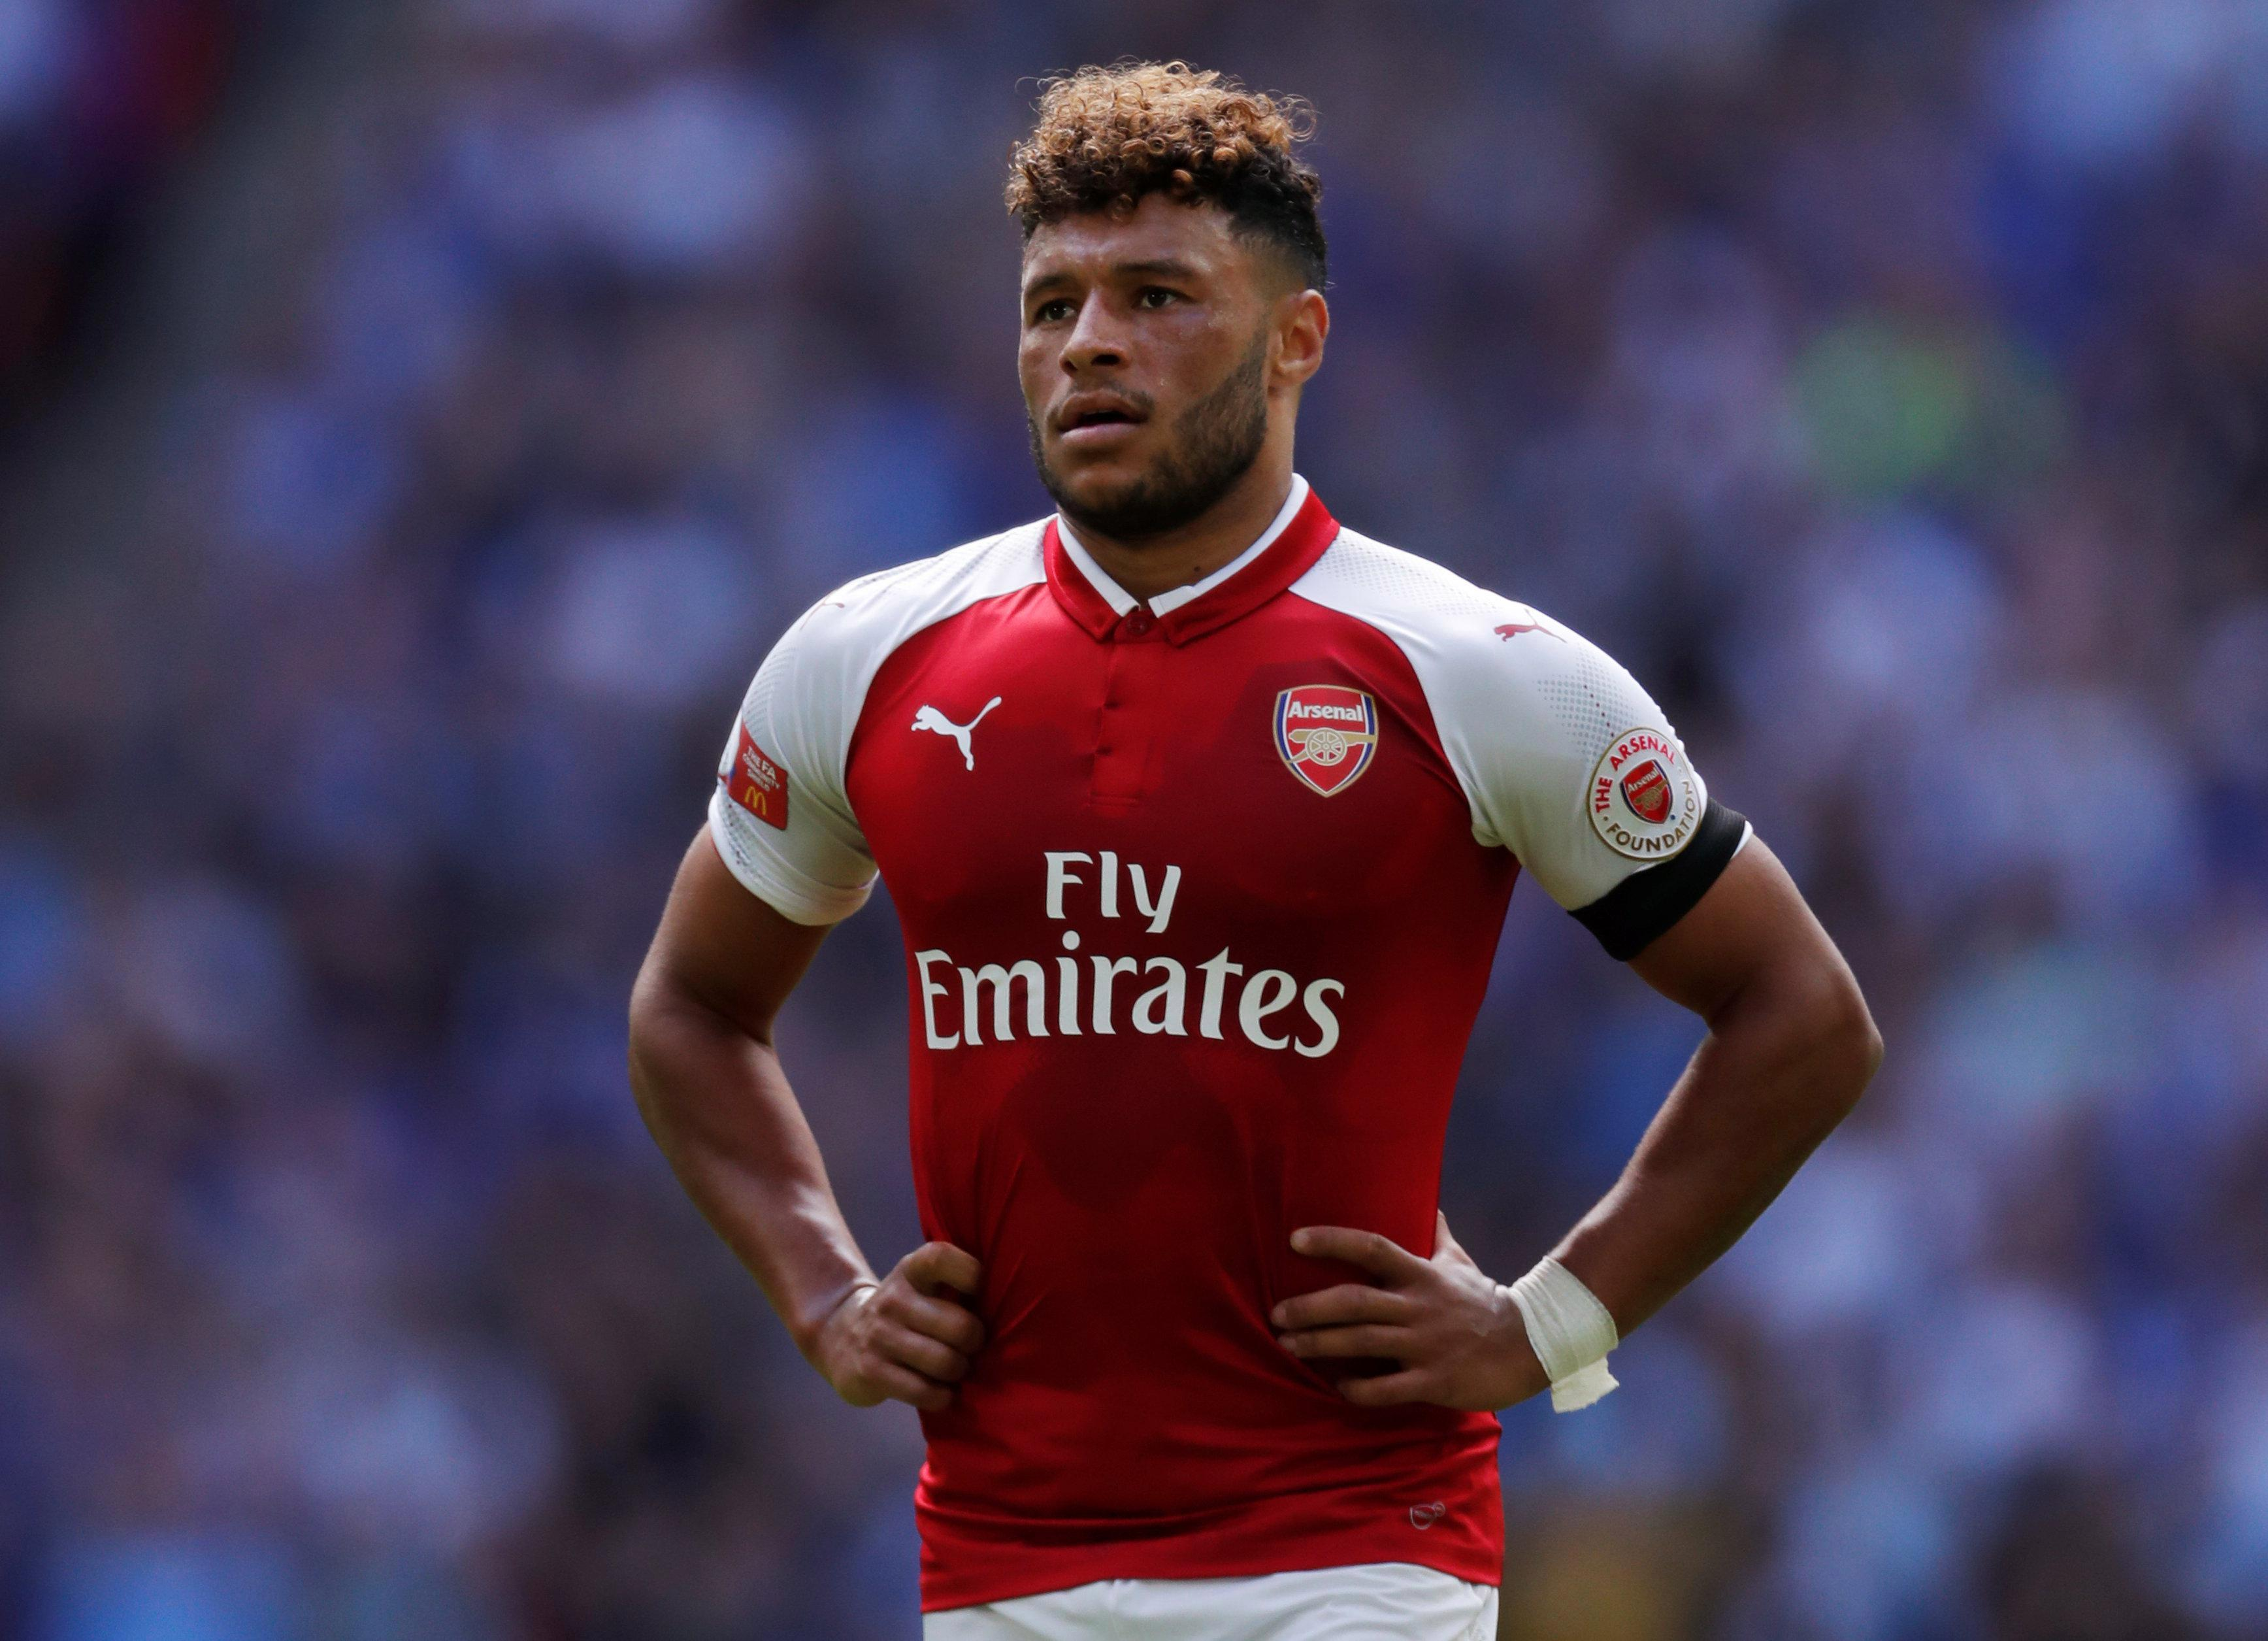 Alex Oxlade-Chamberlain hinted he is heading for Liverpool